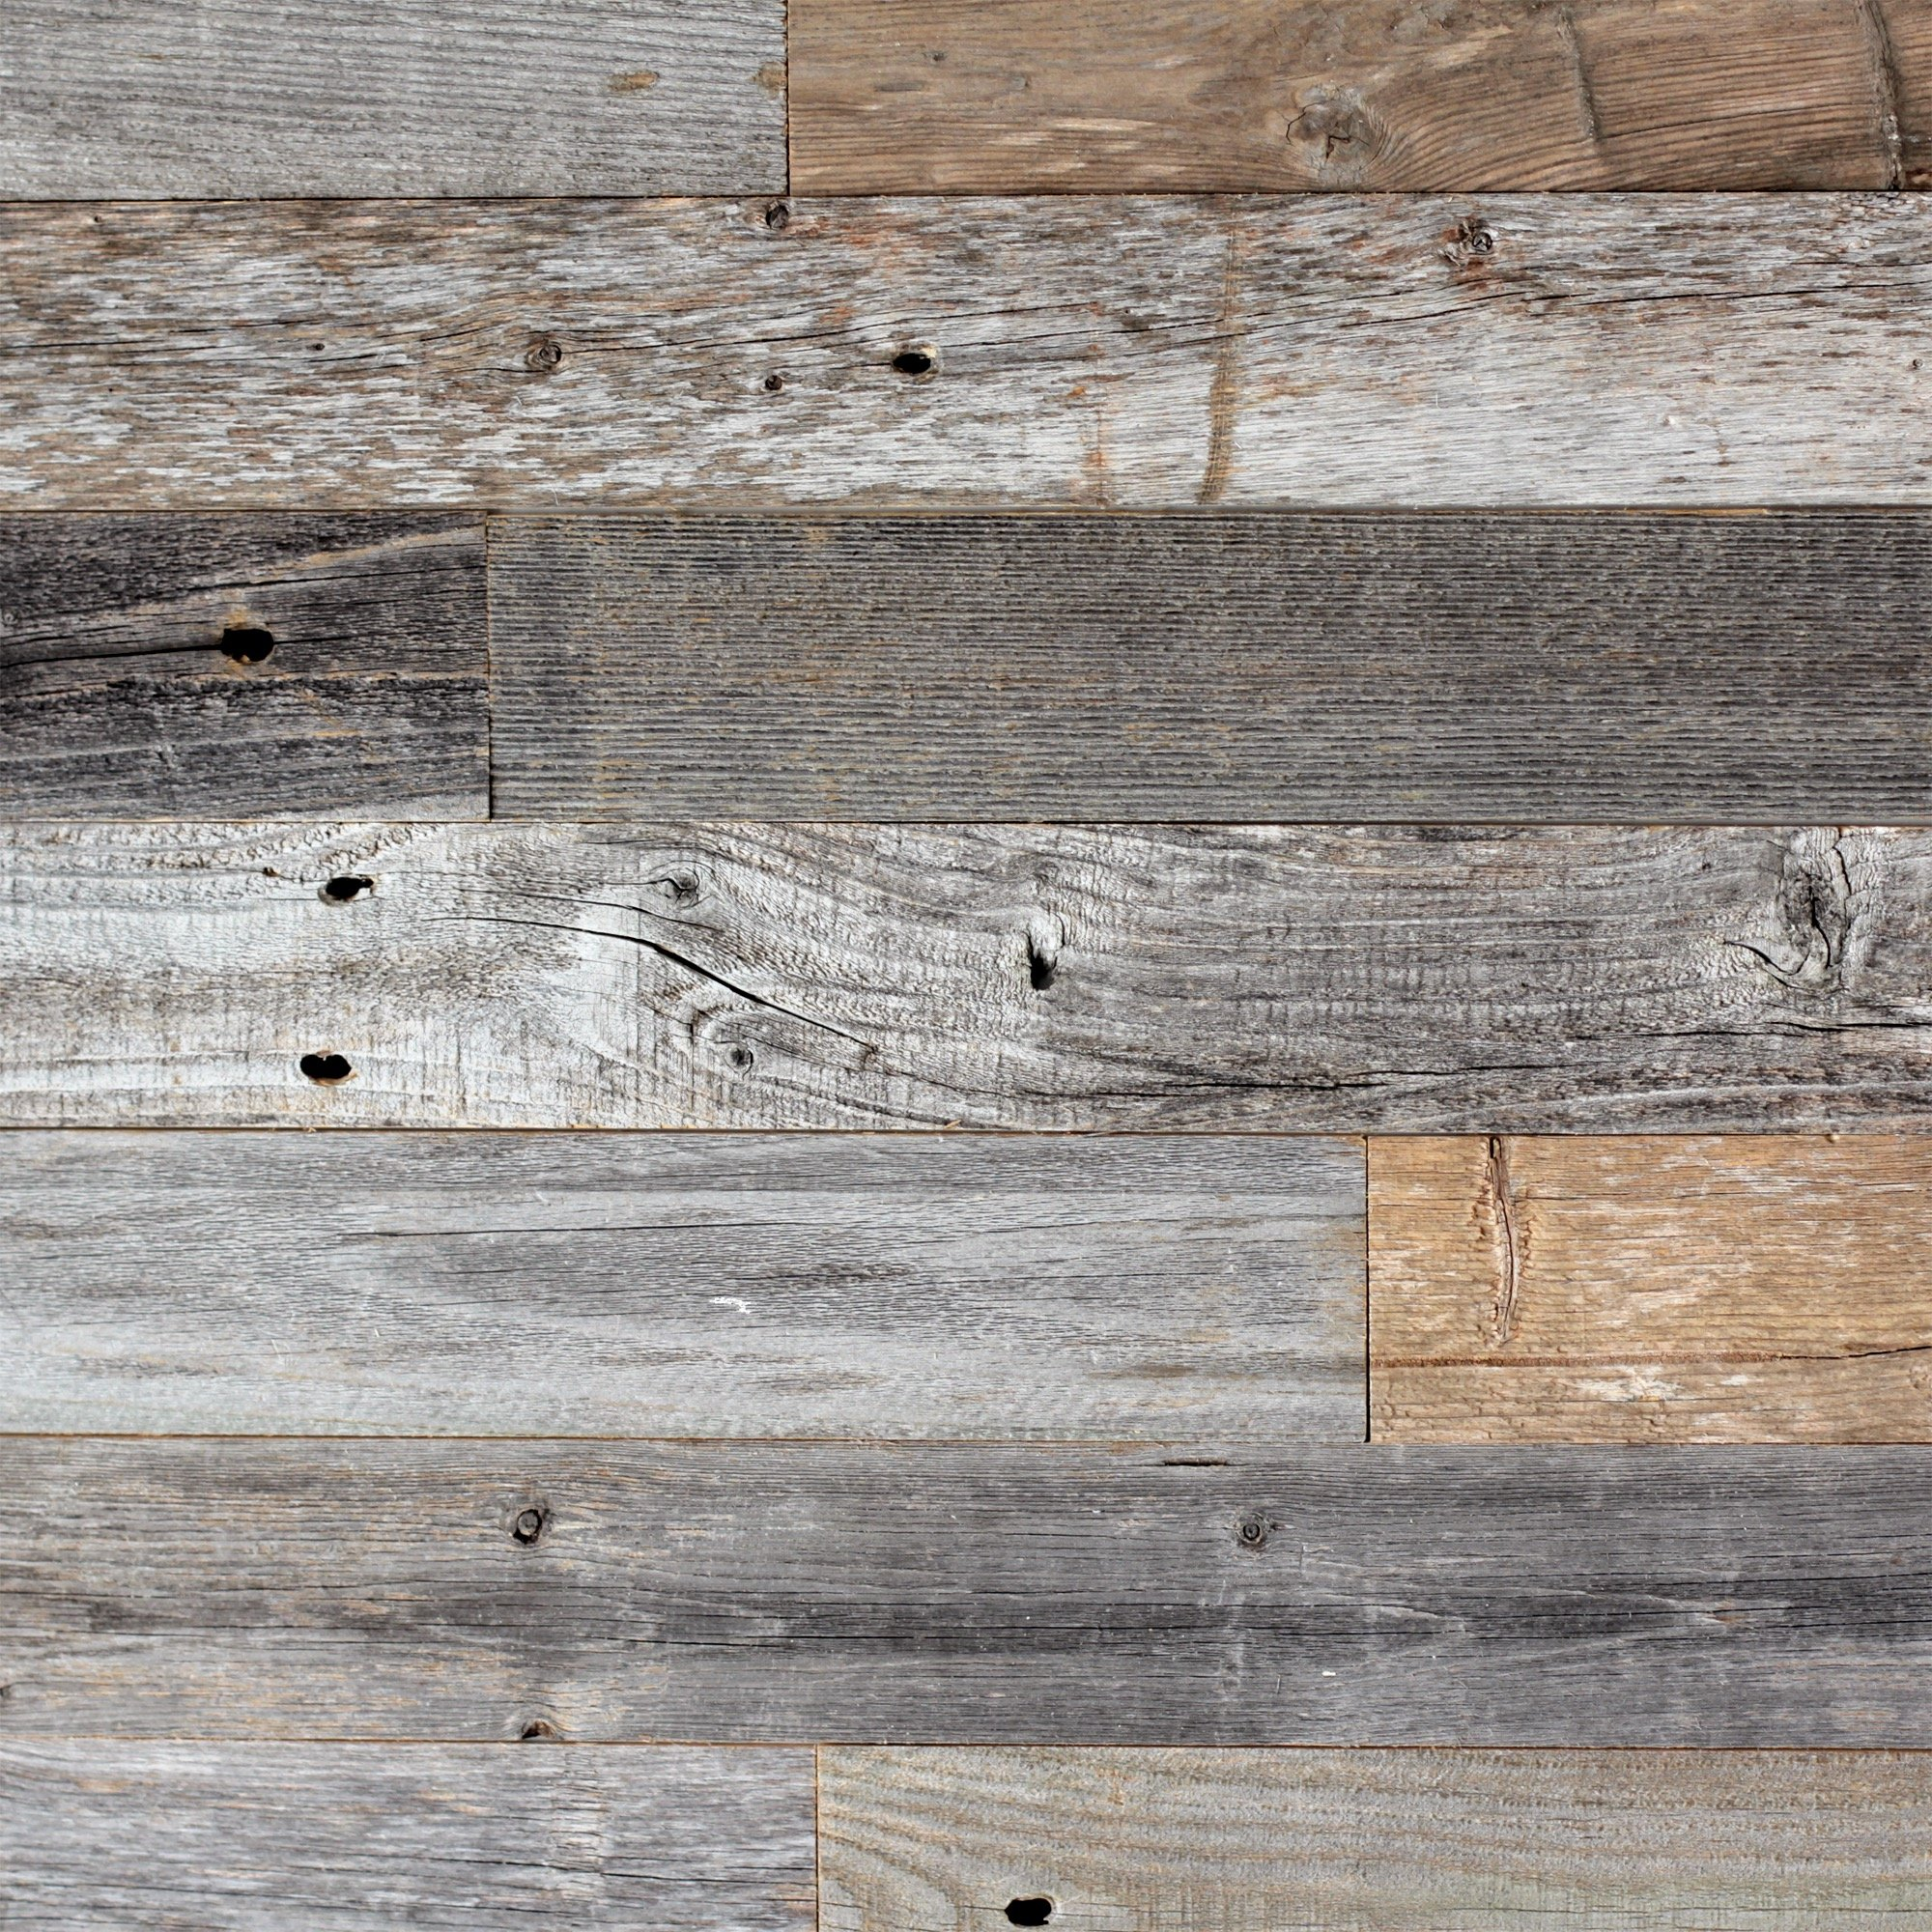 Amazon.com : Stikwood Reclaimed Weathered Wood Corner Trim